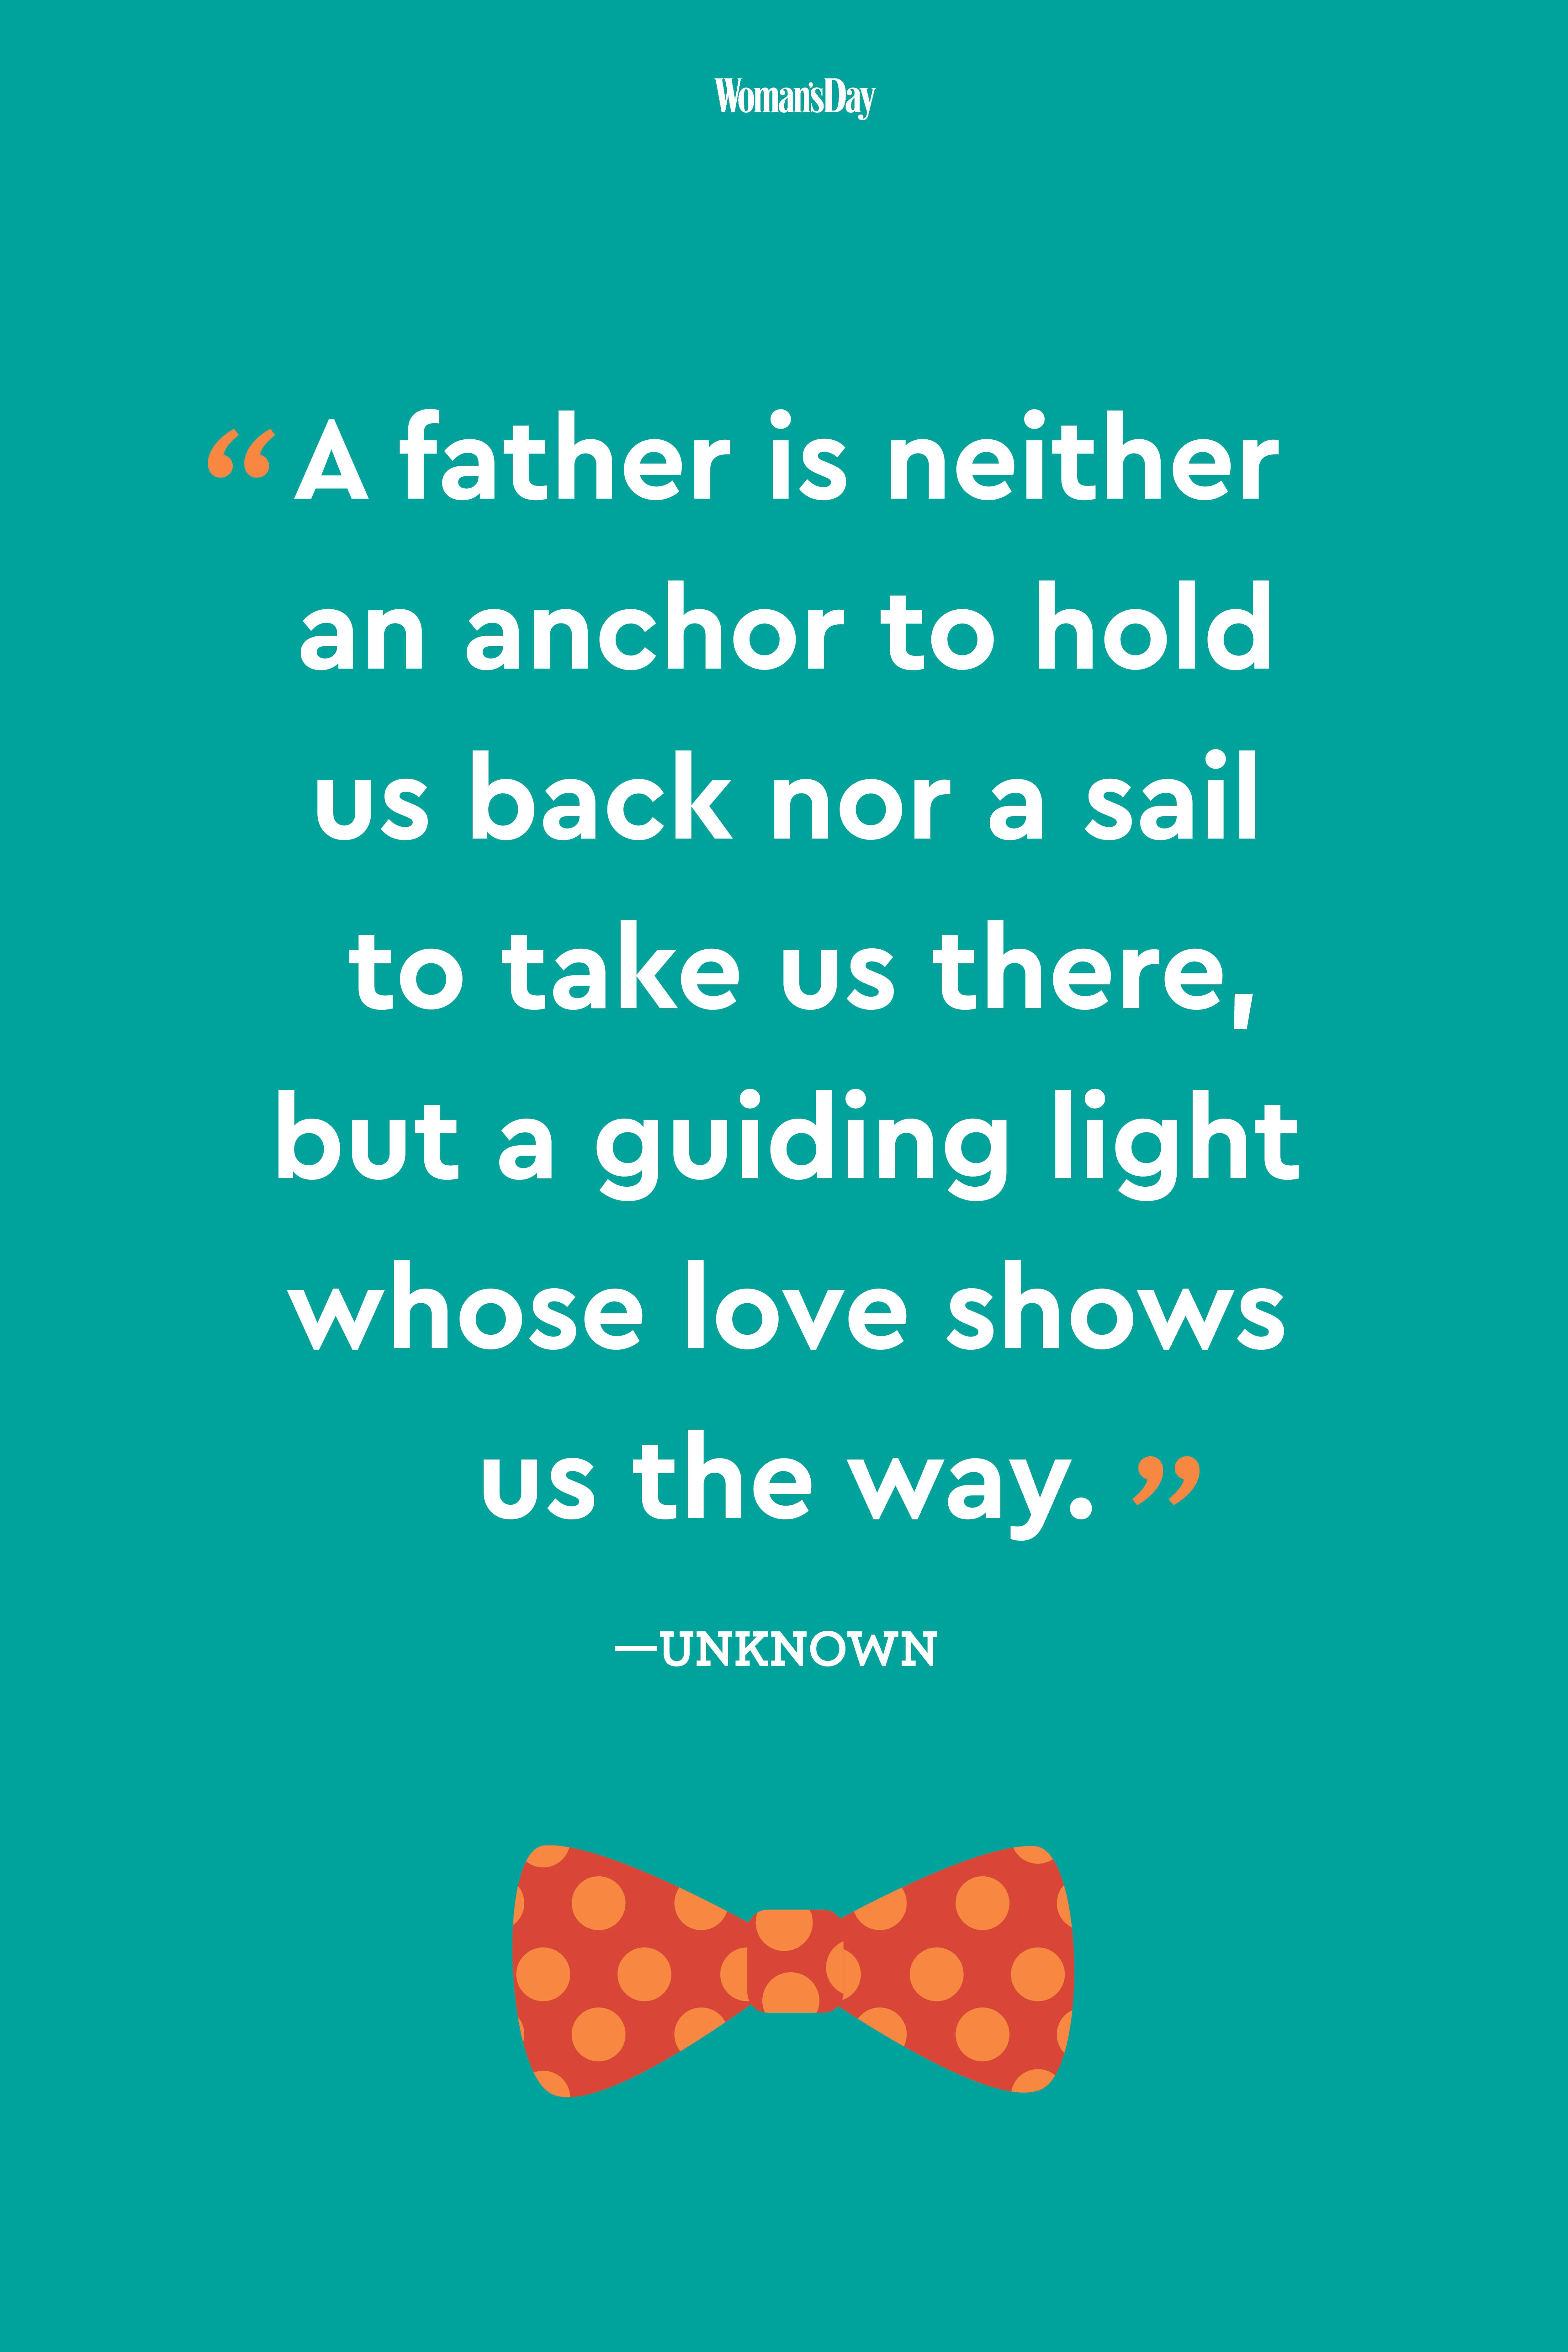 Messages 24 Fathers Day Quotes To Share With Dad Womans Day 24 Best Fathers Day Quotes Meaningful Fathers Day Sayings About Dads